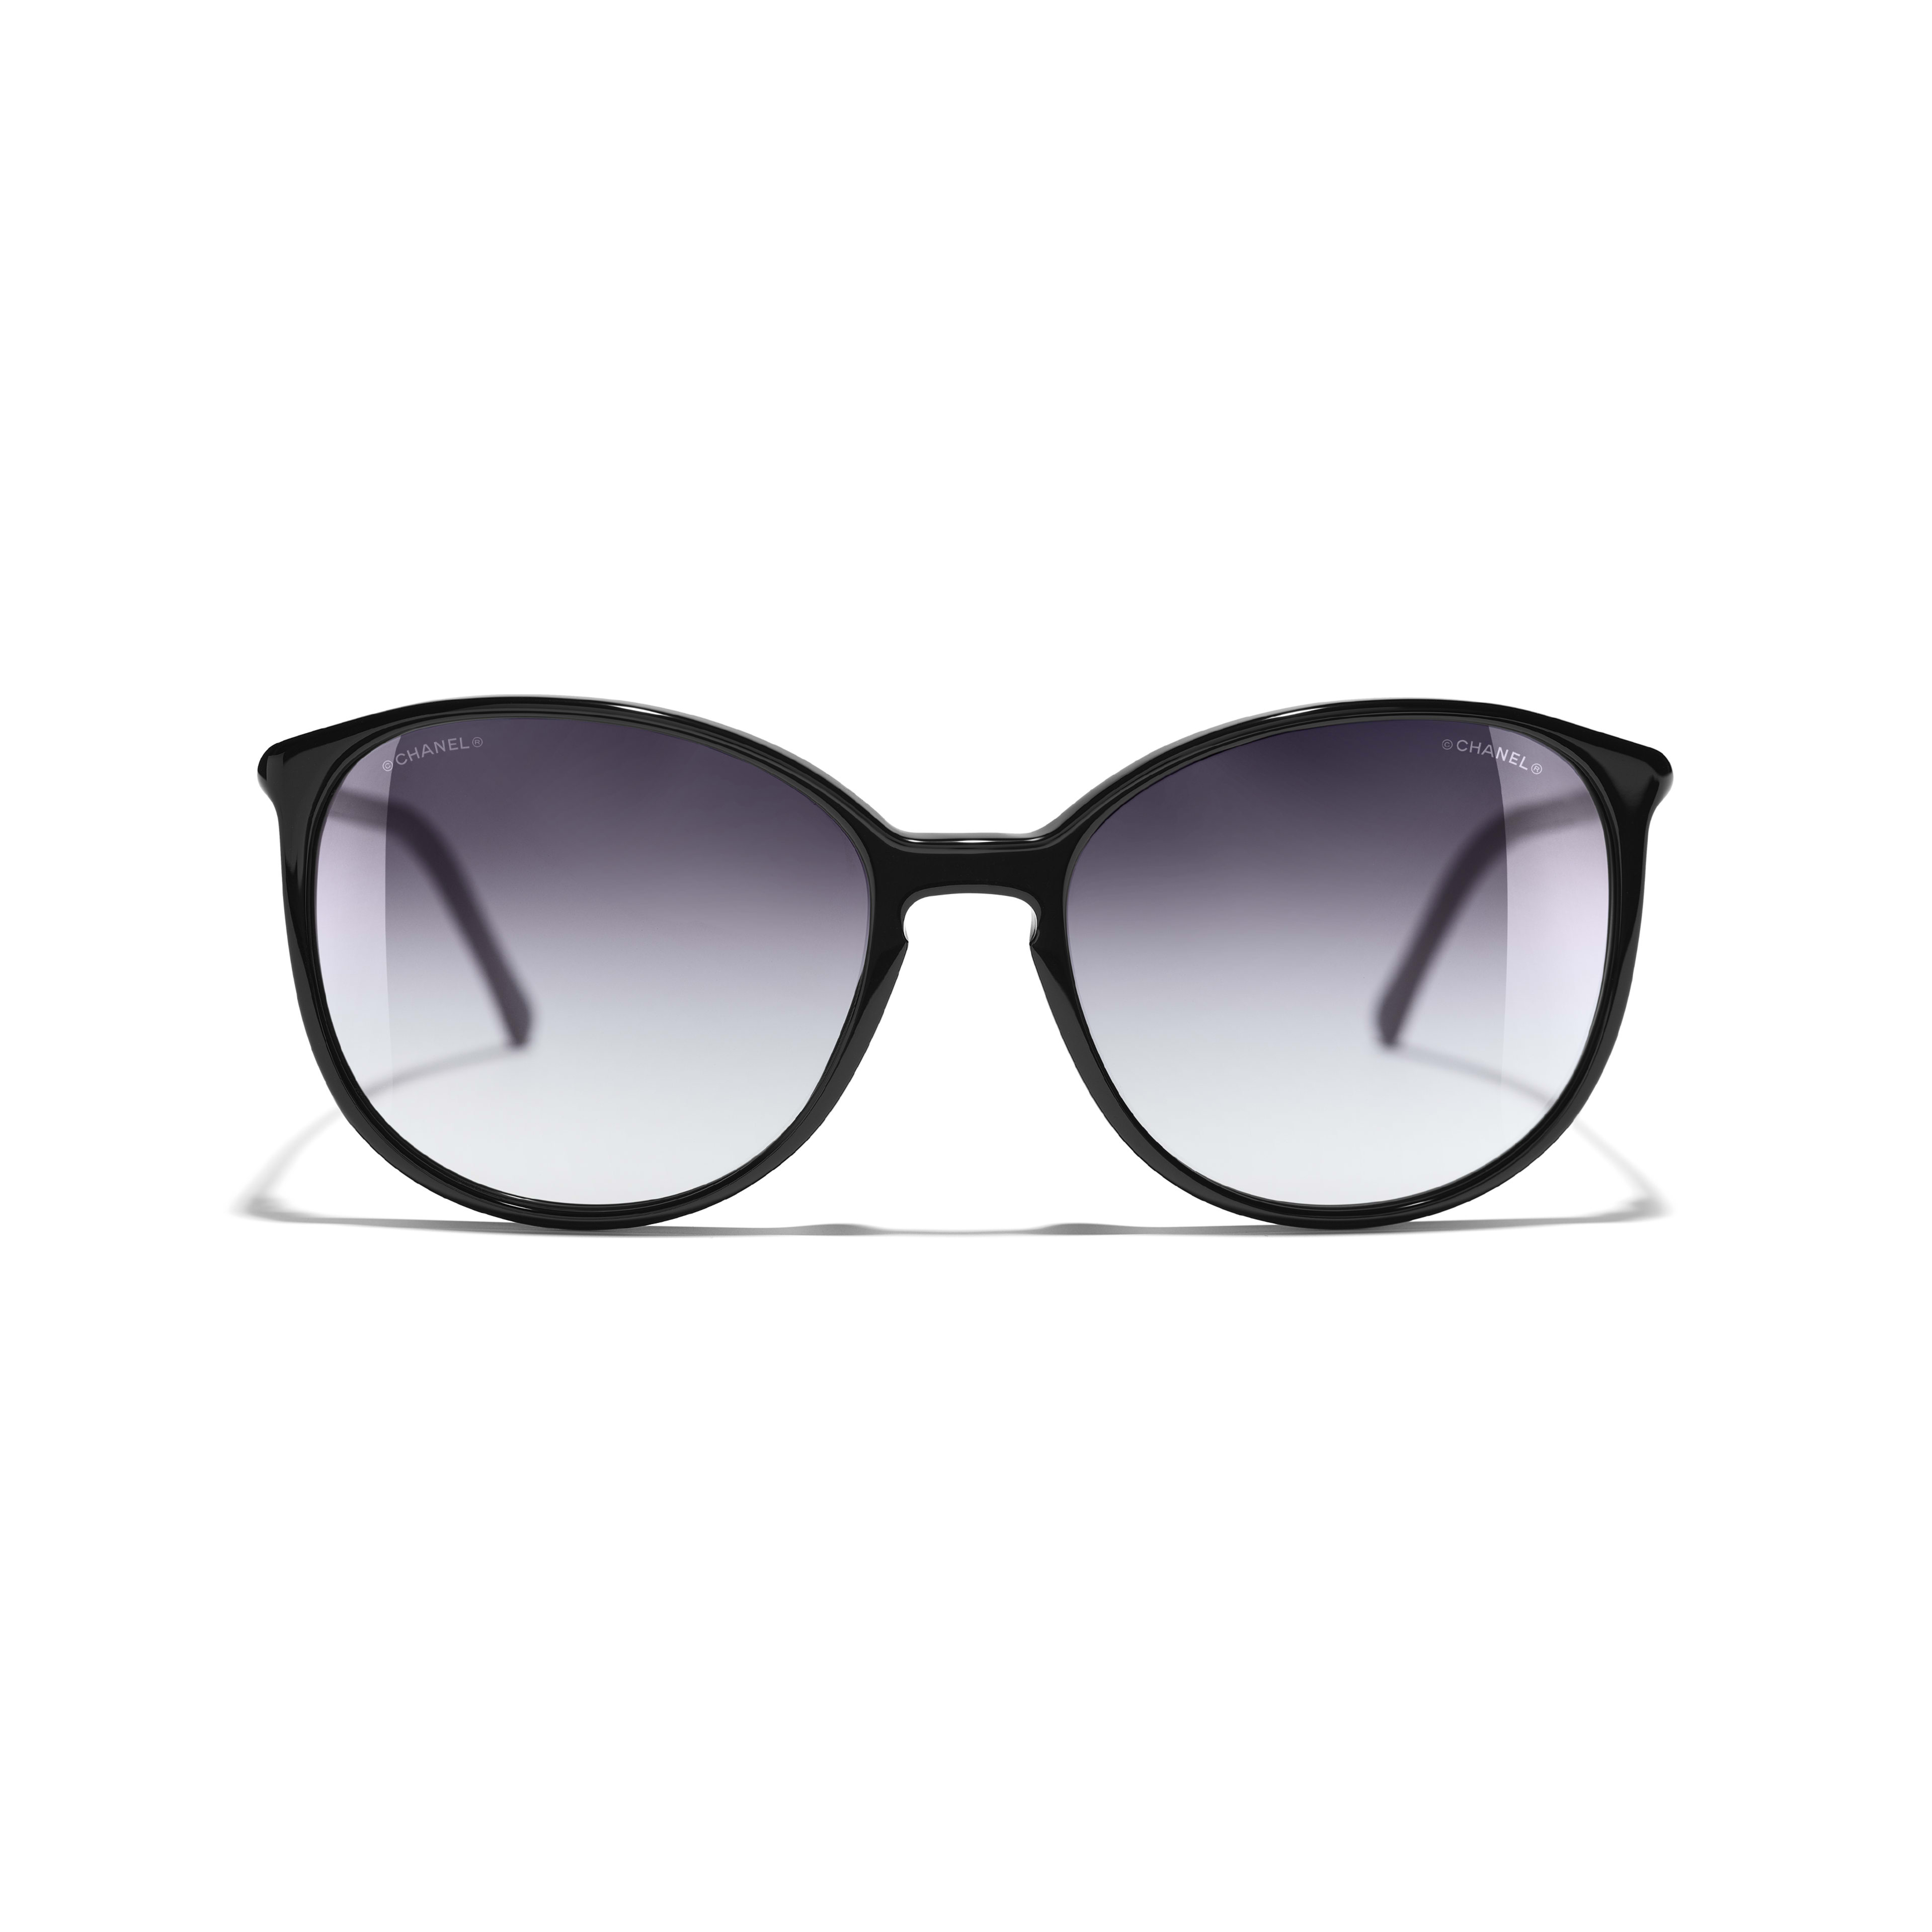 Butterfly Sunglasses Acetate Black -                                                    view 2 - see full sized version